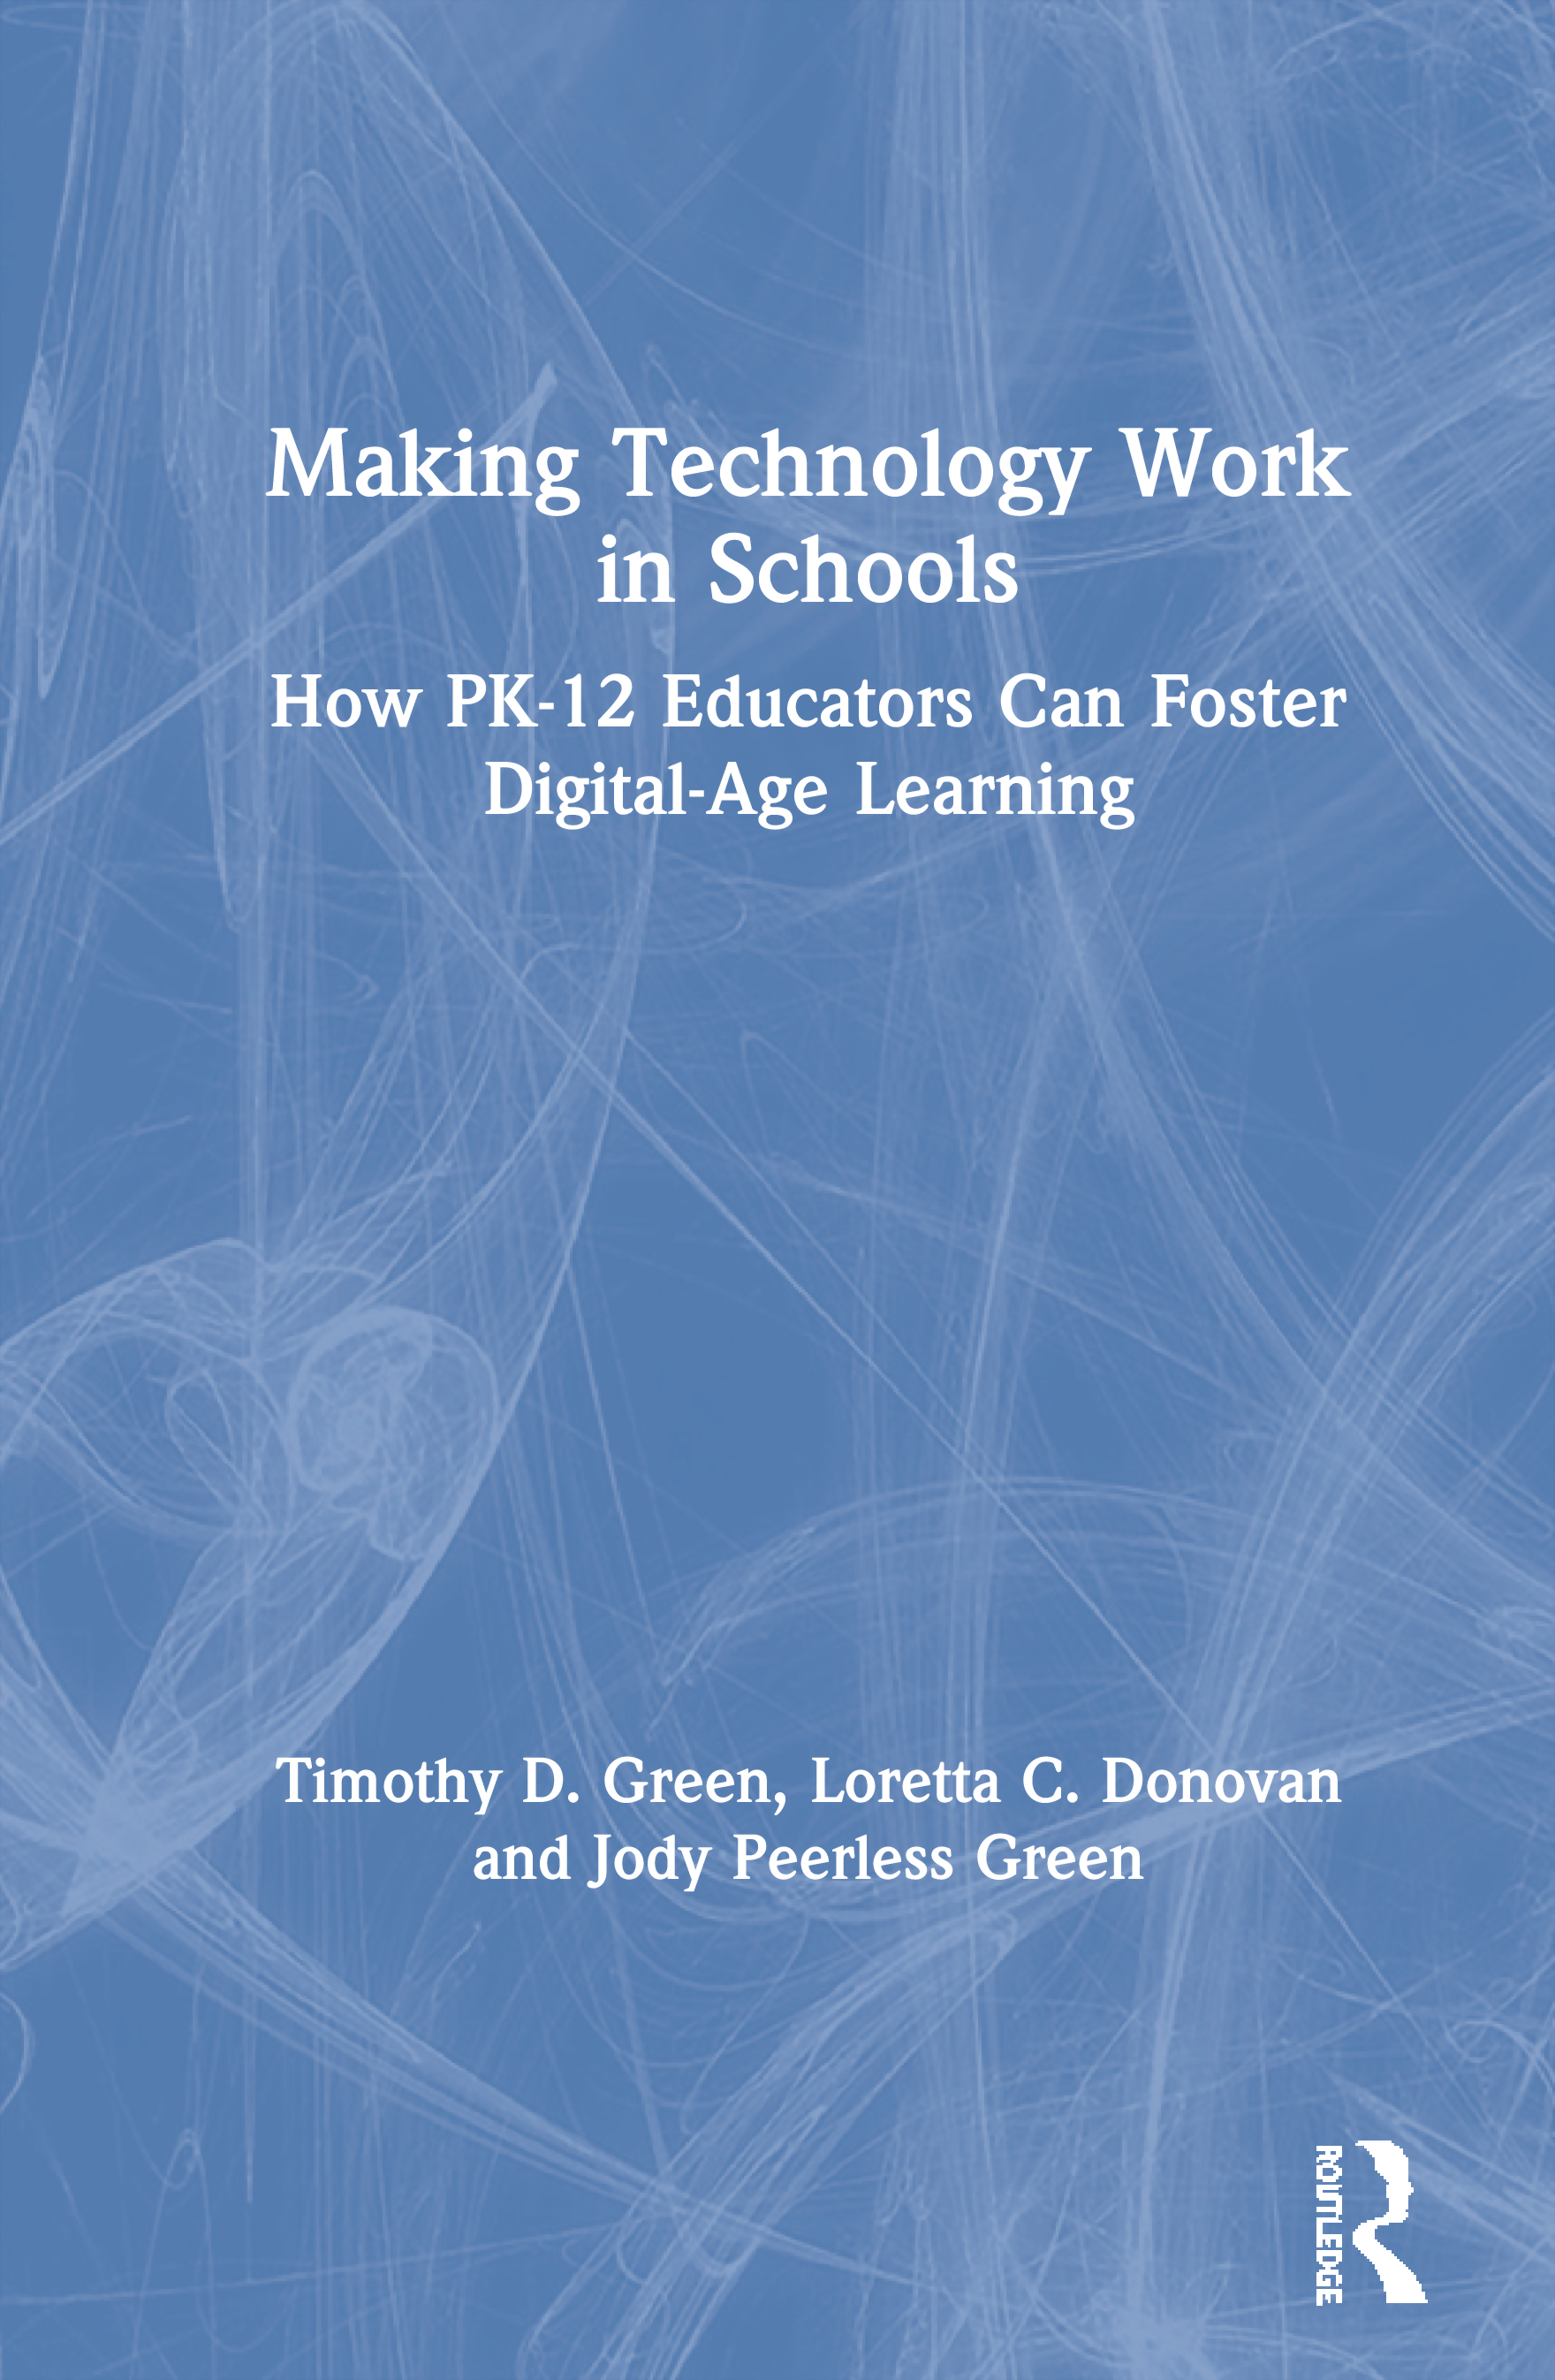 Making Technology Work in Schools: How PK-12 Educators Can Foster Digital-Age Learning book cover